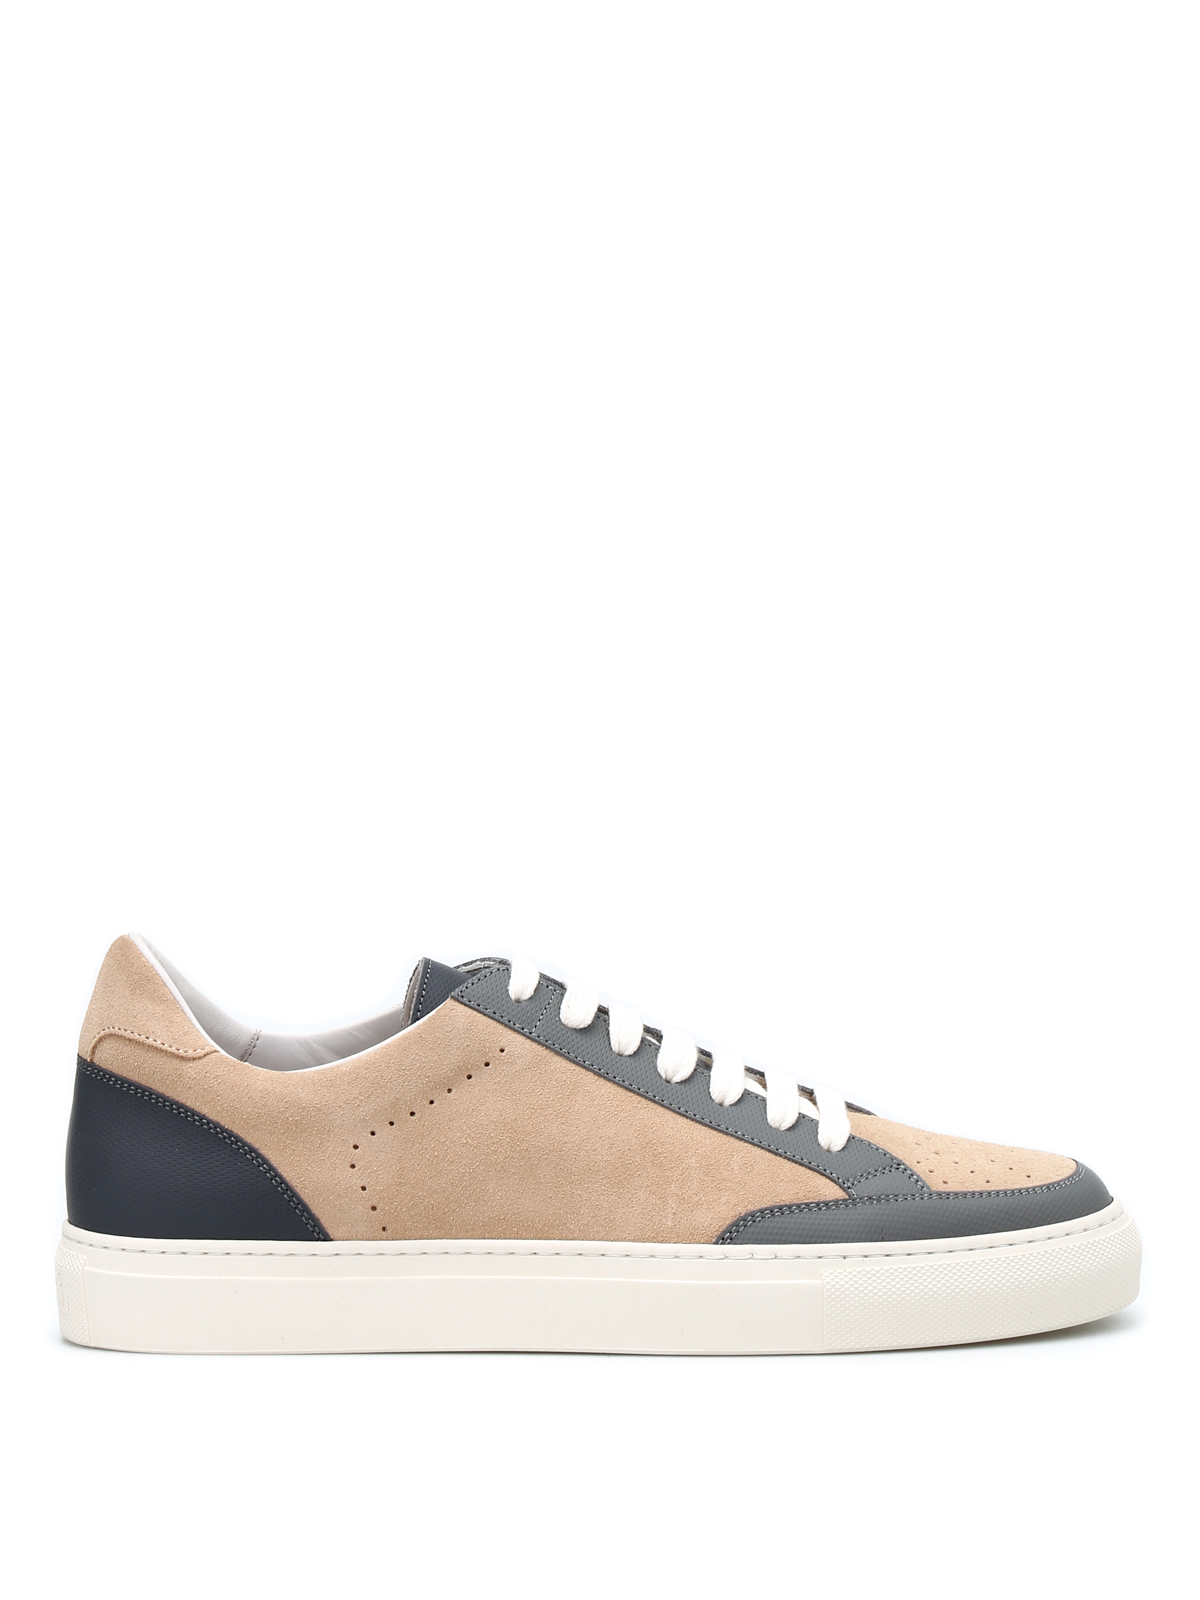 Brunello Cucinelli Leather Low Trainers